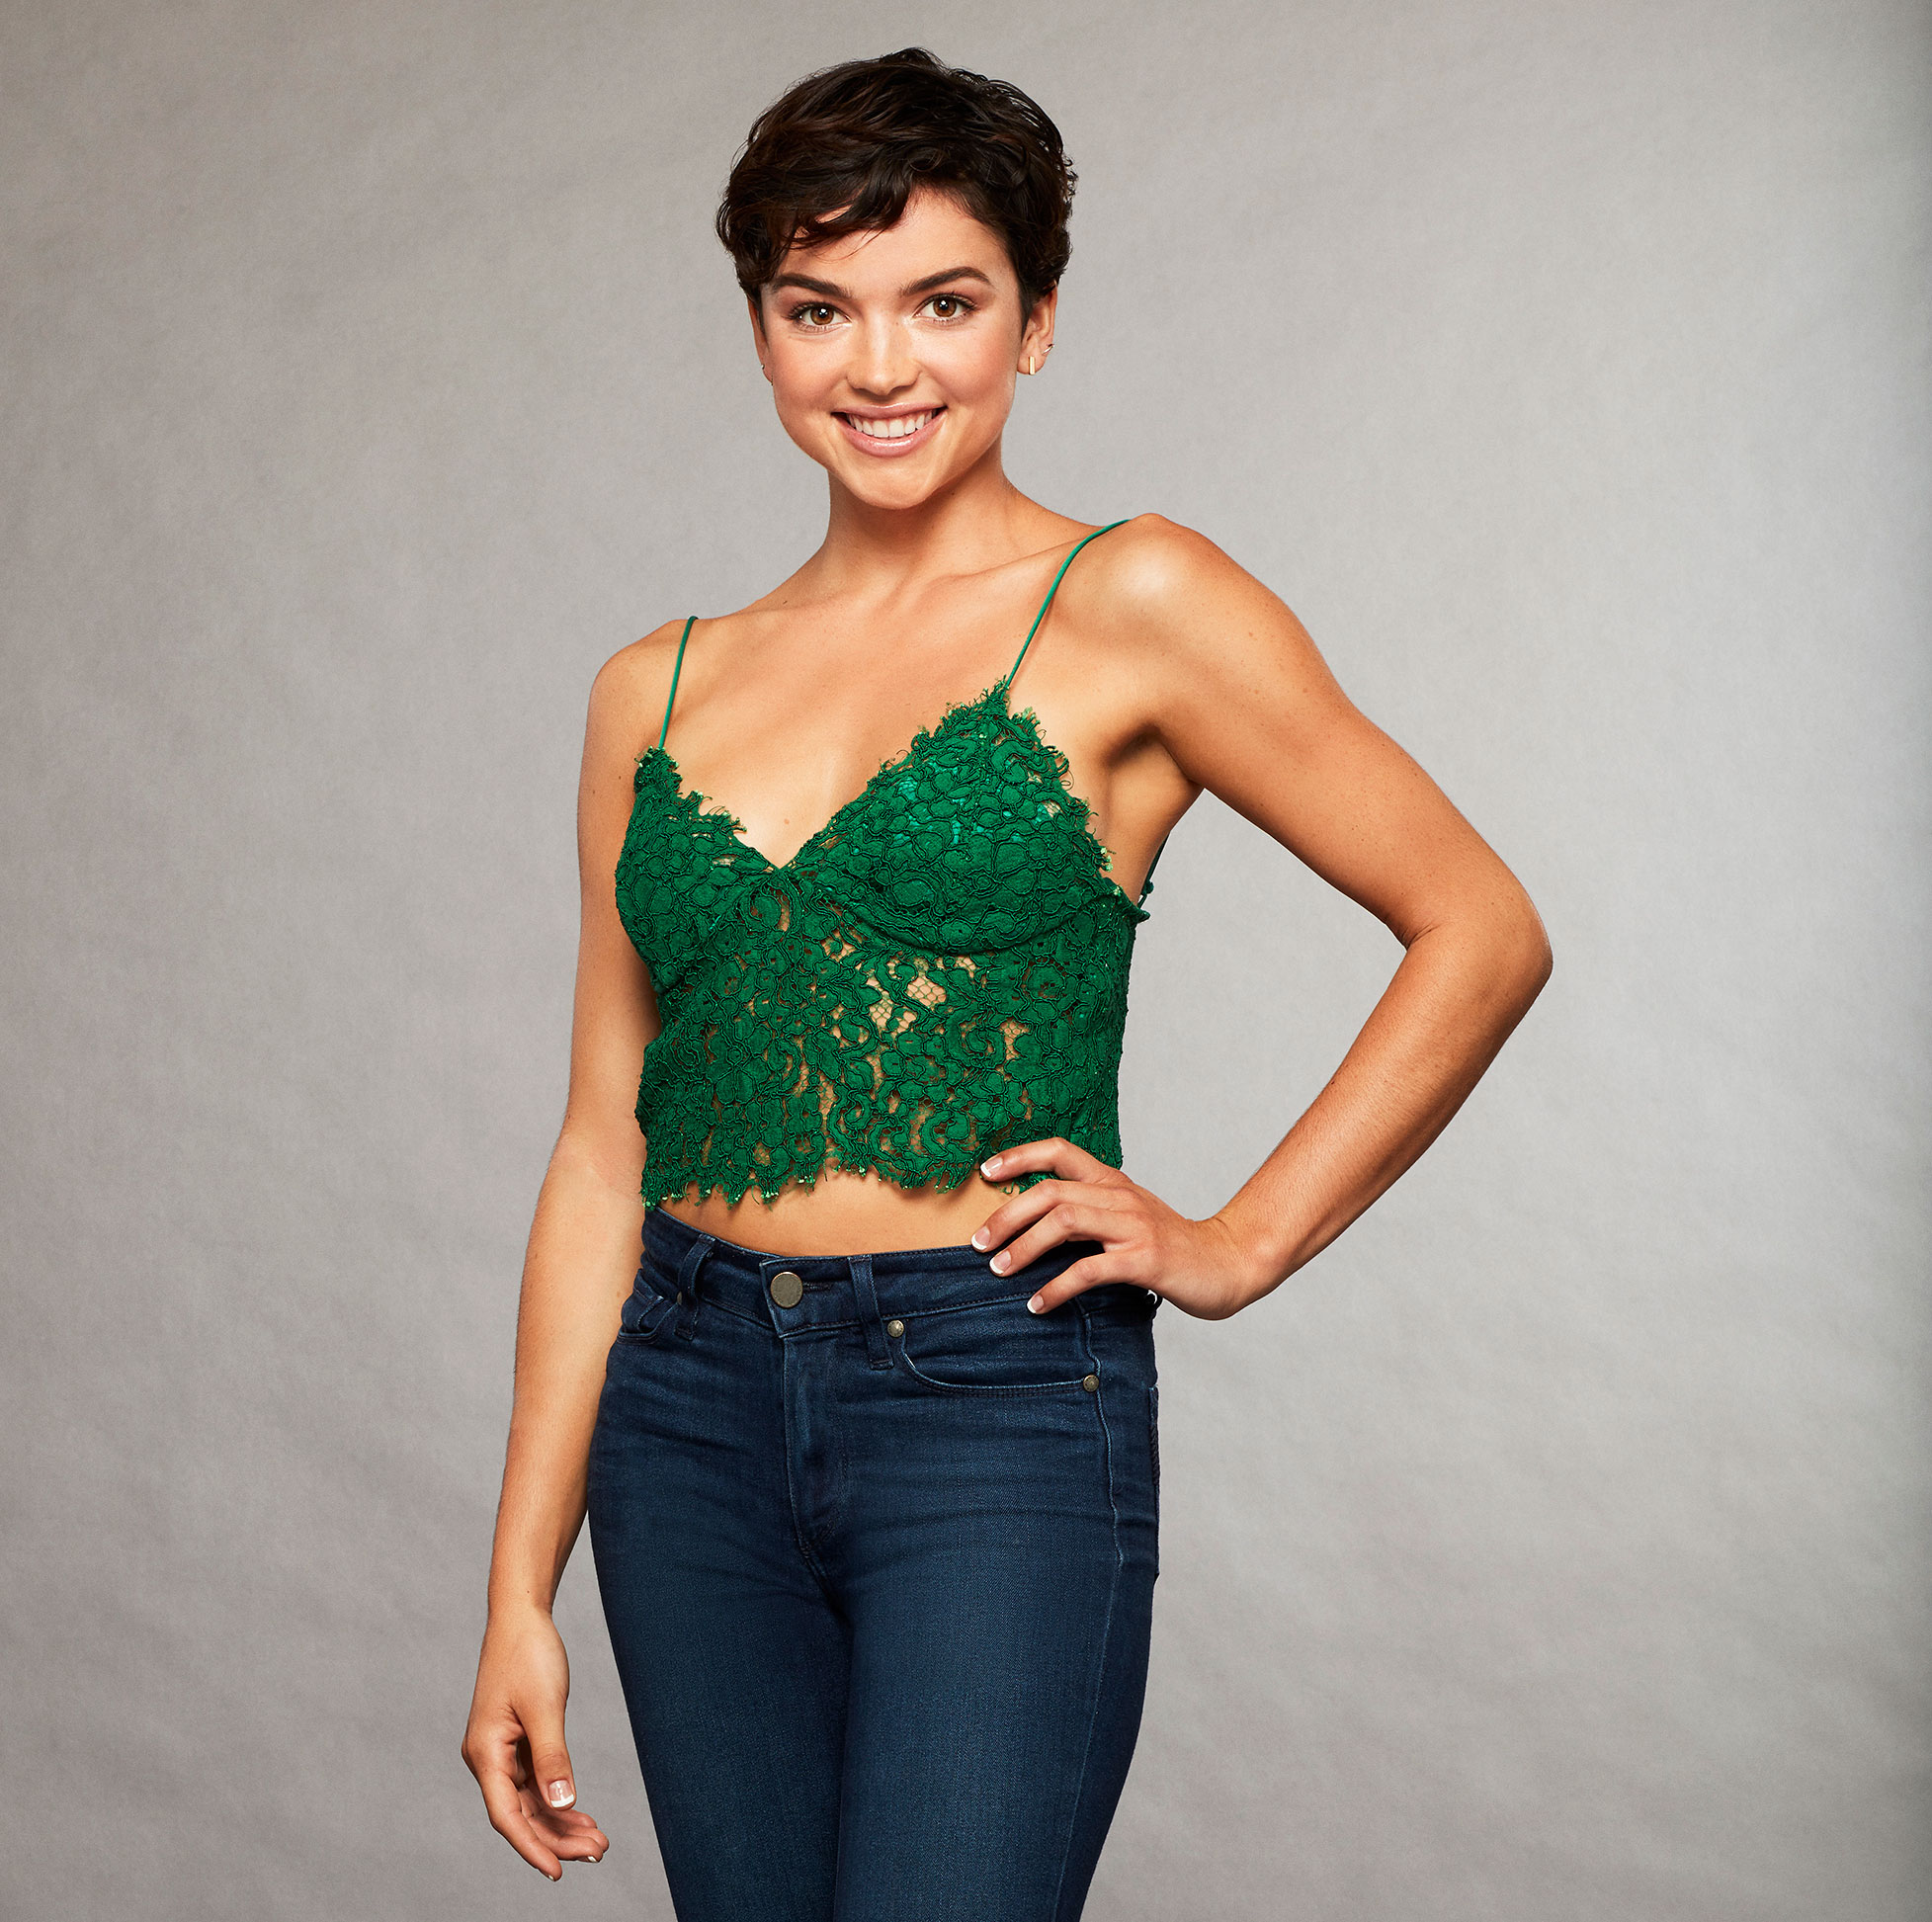 The Bachelor' Alum Bekah Martinez Candidly Talks About the Truths of Struggling